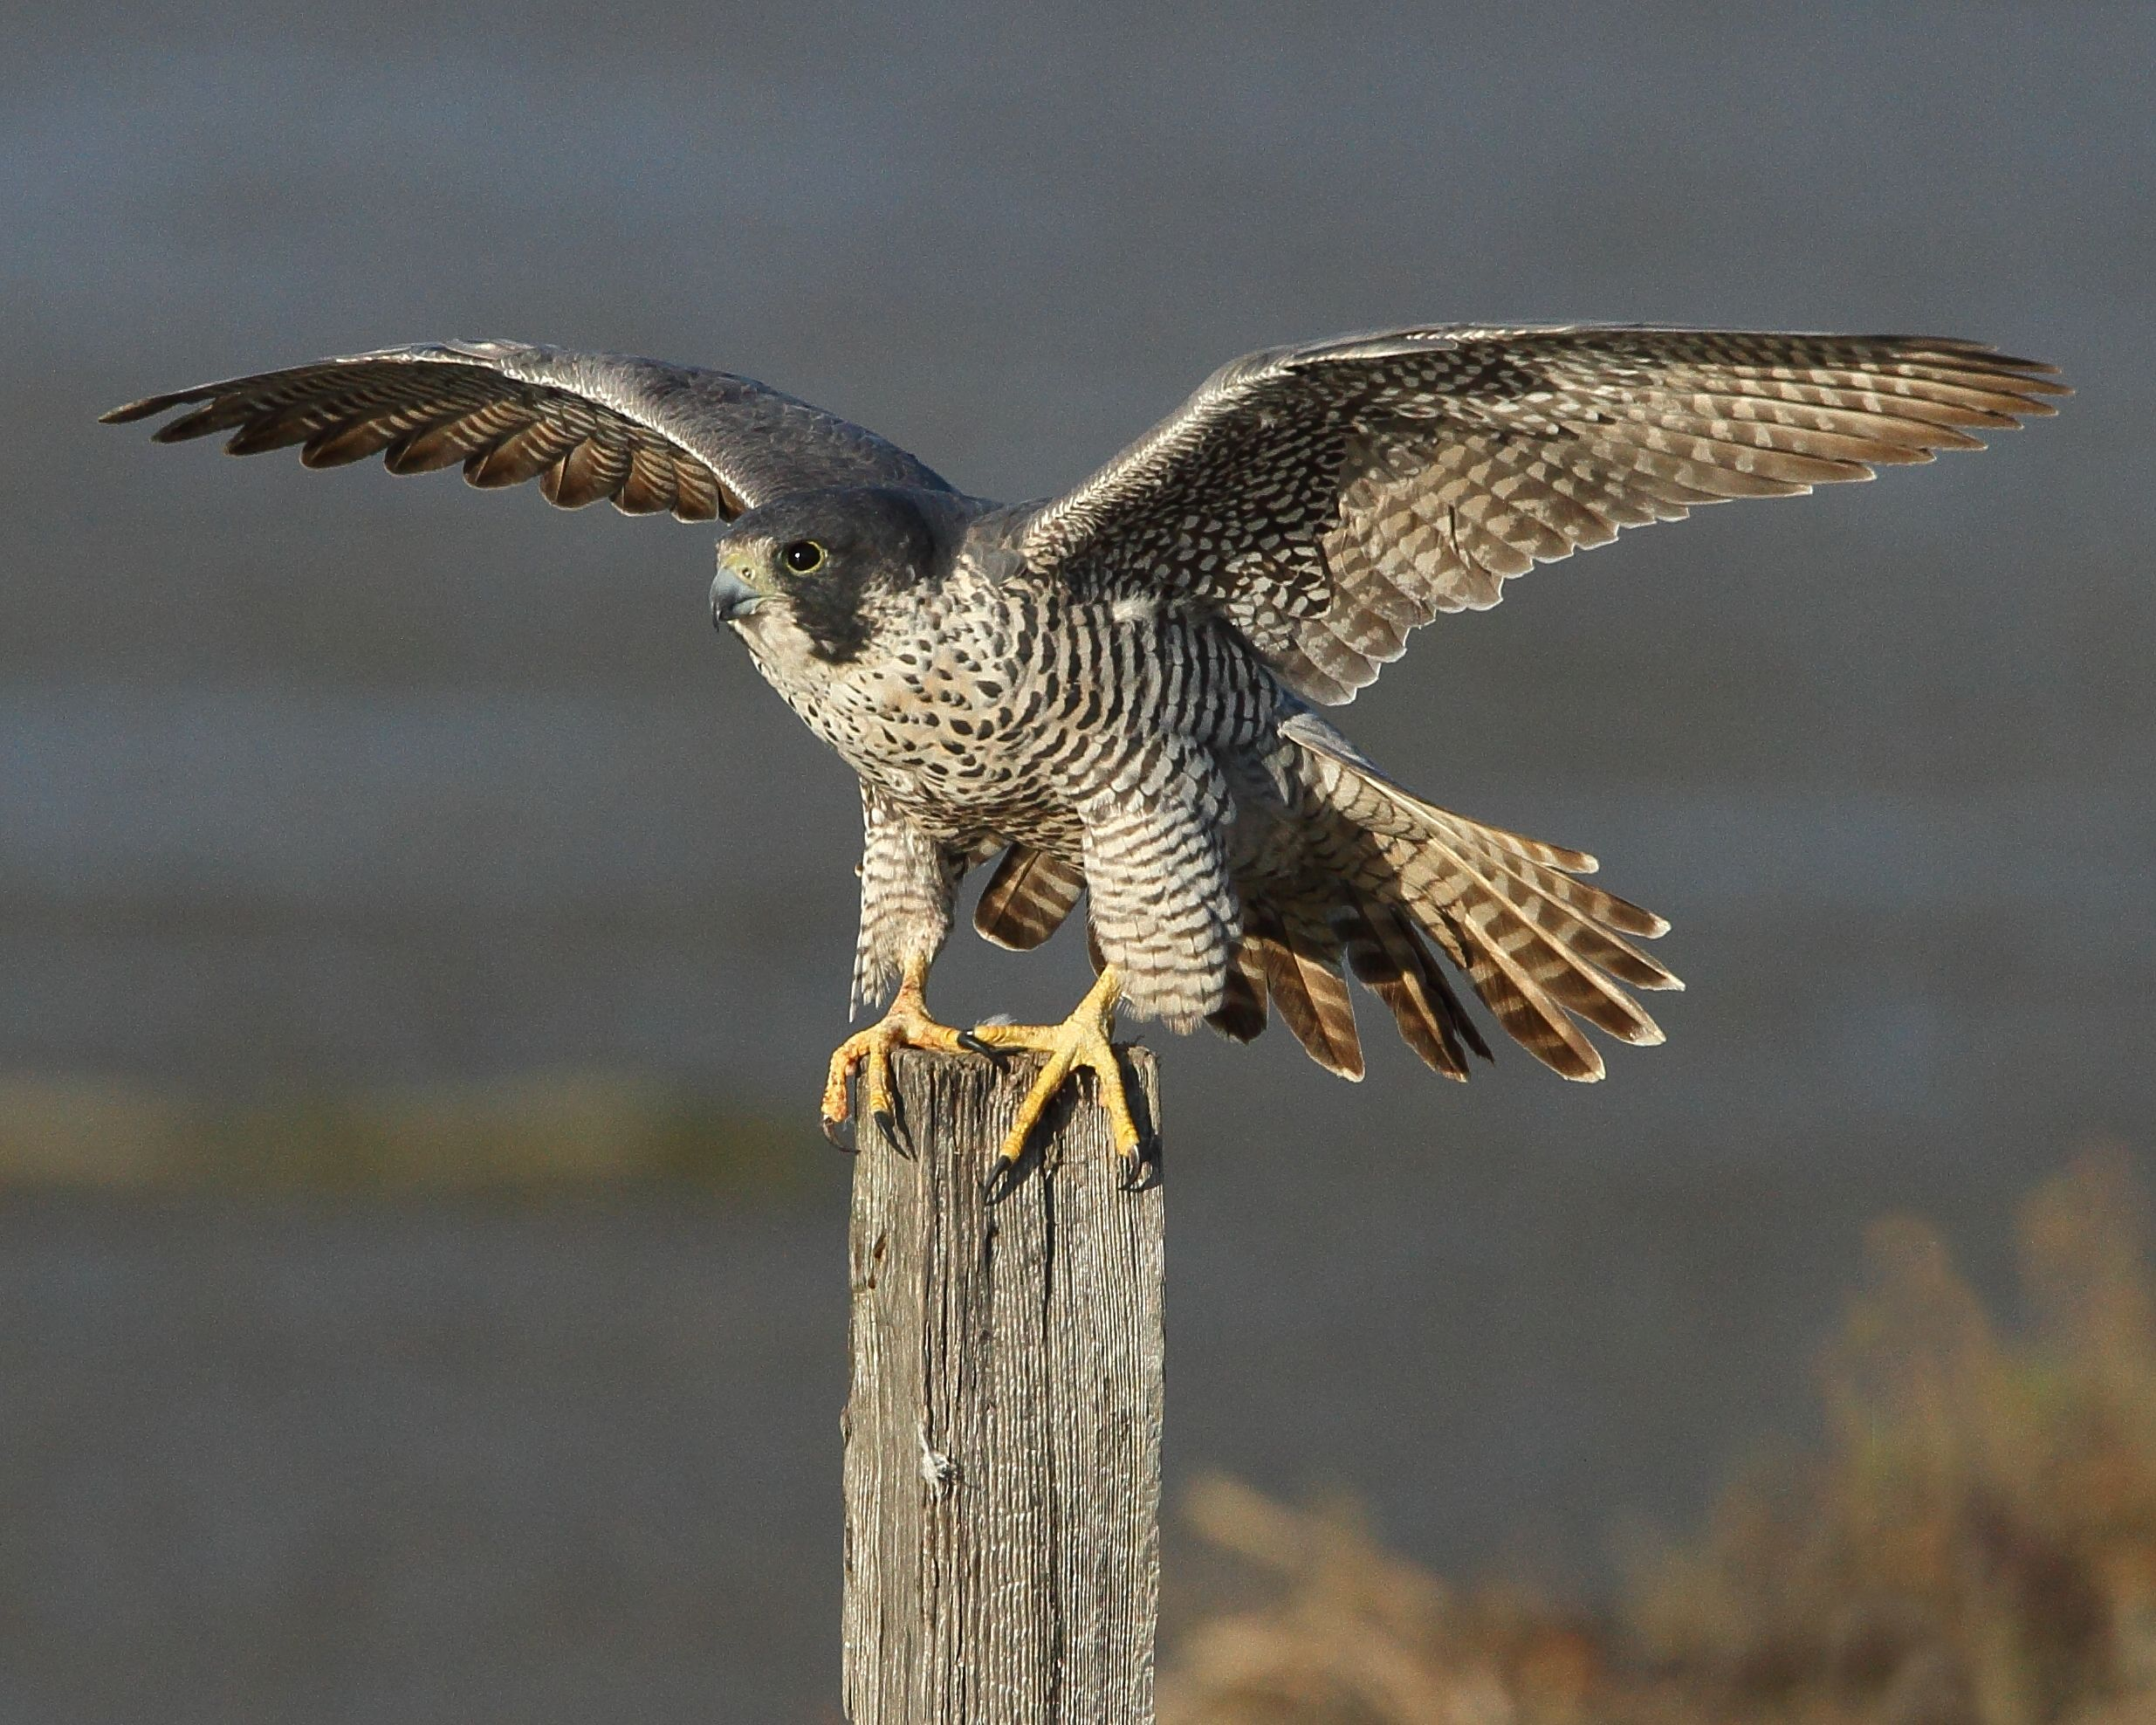 Peregrine Falcon Wallpaper Picture Peregrine Falcon Big Animals Peregrine